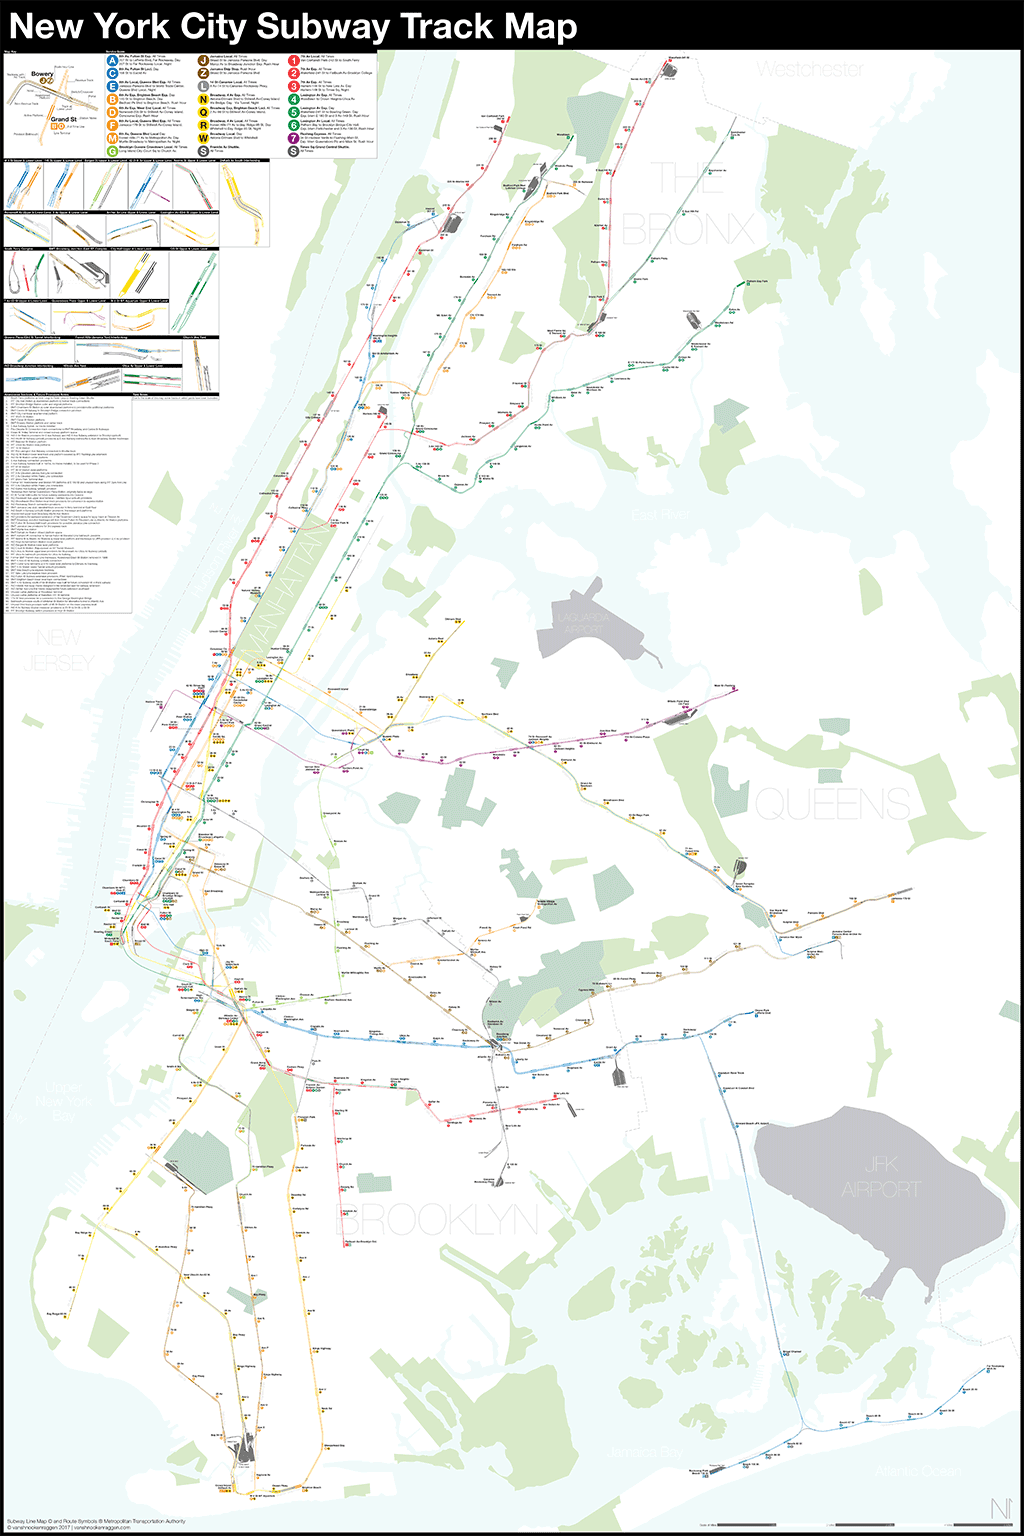 Latest Nyc Subway Map.A Complete And Geographically Accurate Nyc Subway Track Map